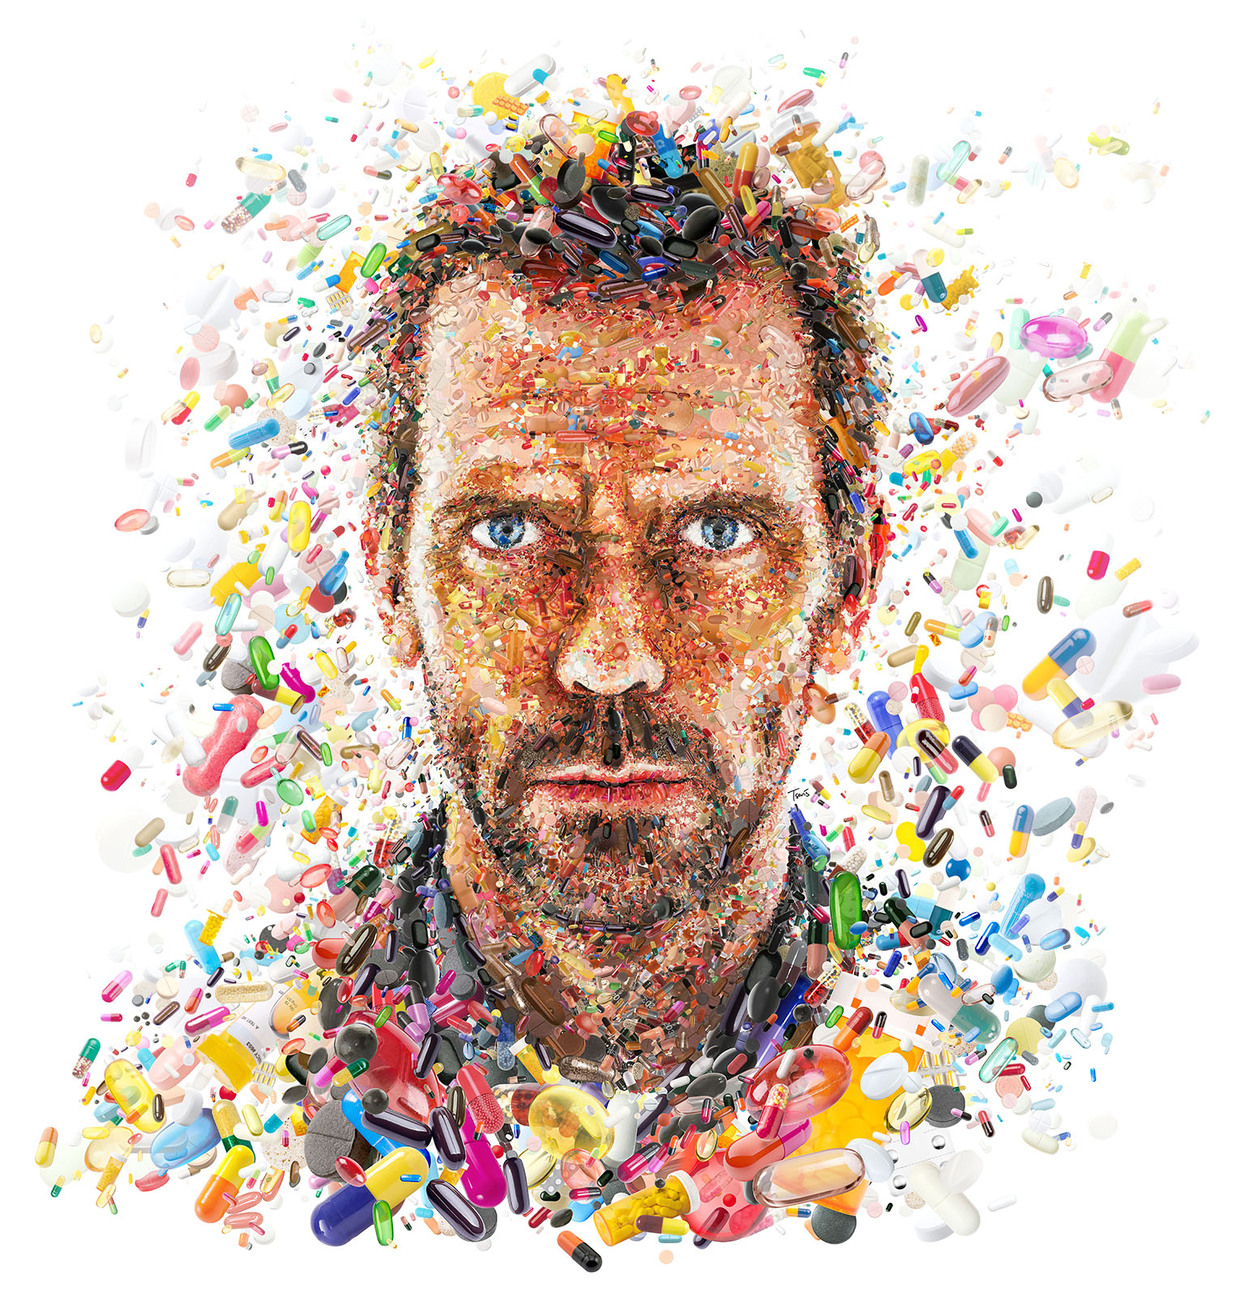 The Mesmerizing Digital Artwork And Complex Mosaic